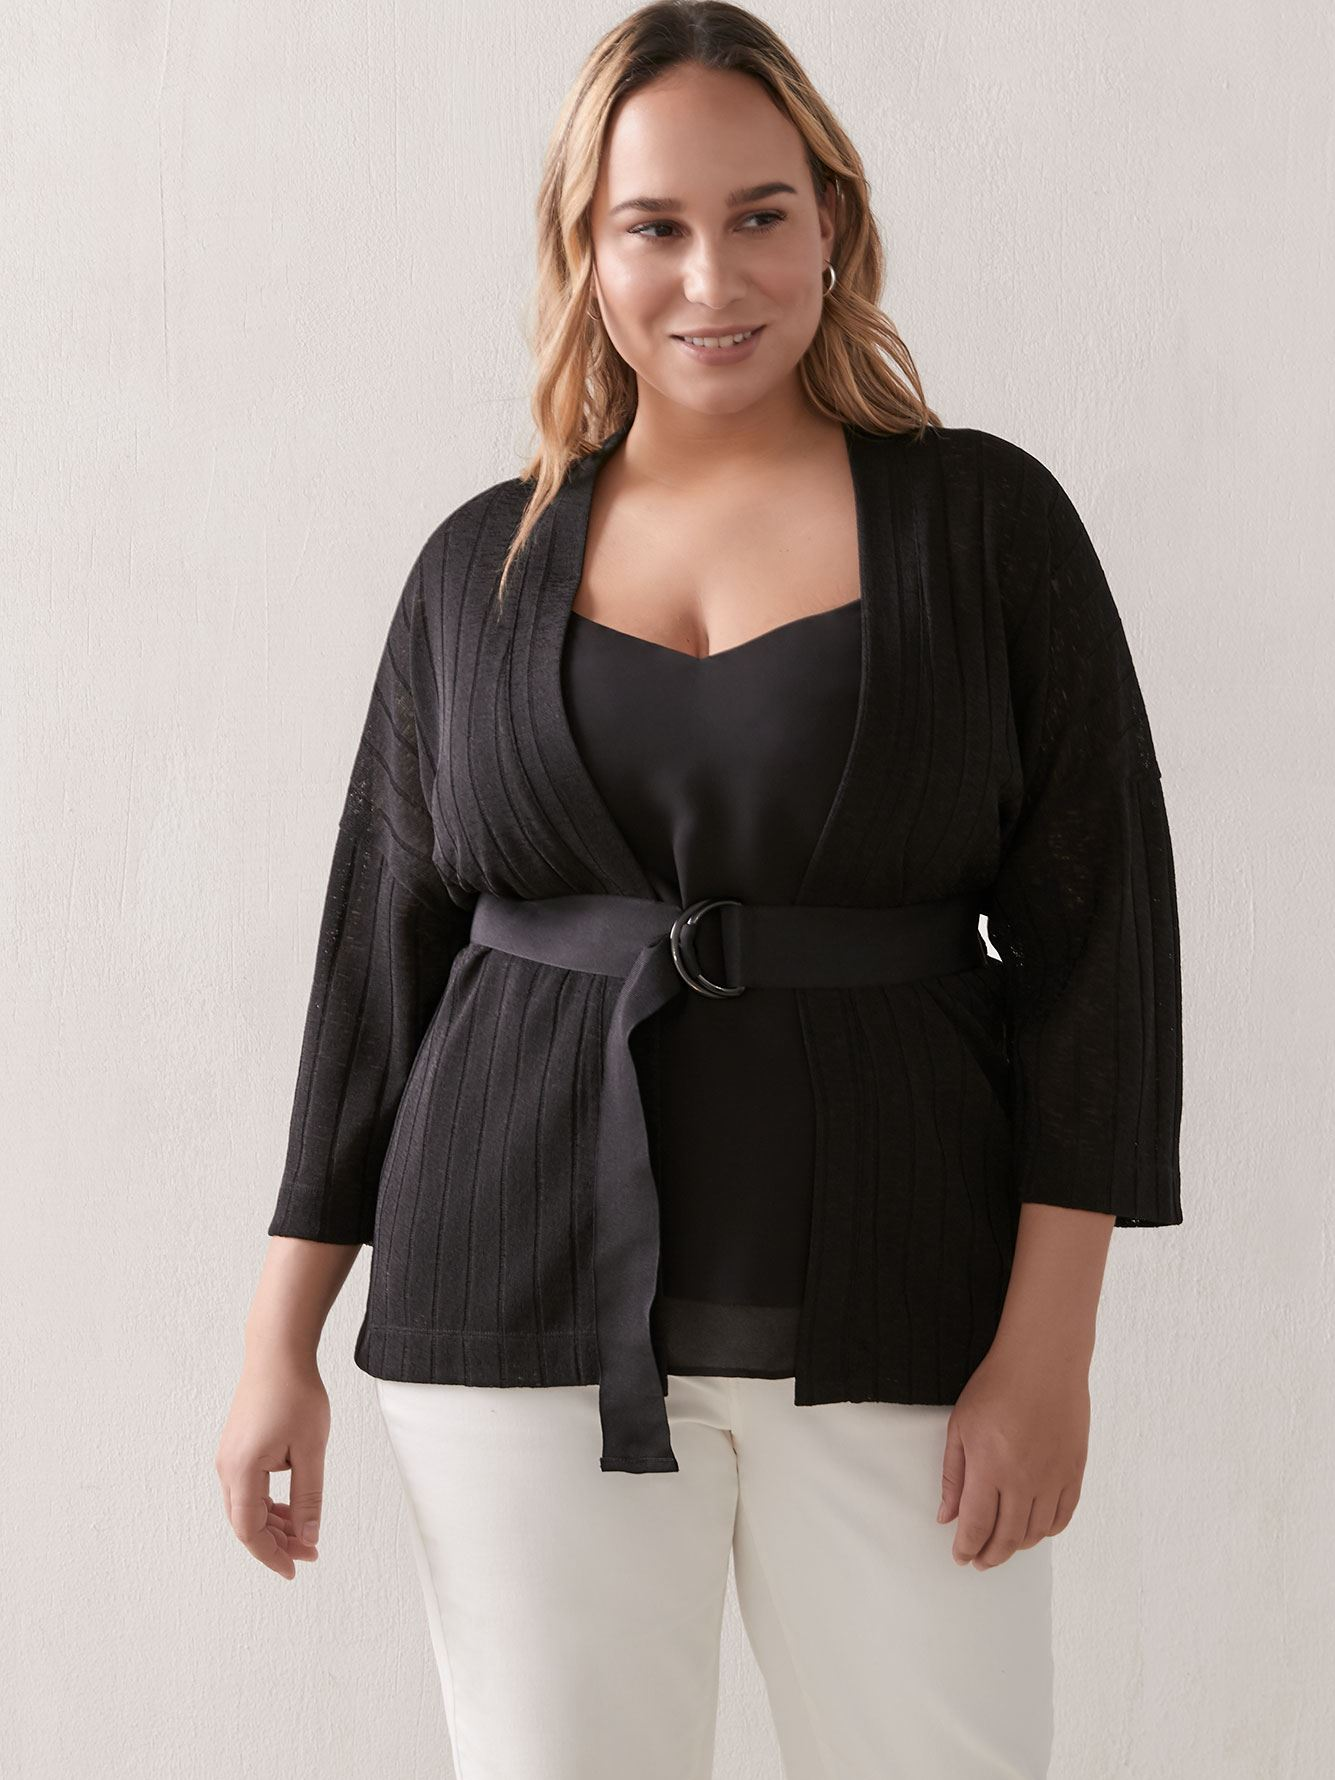 Wide-Sleeve Belted Cardigan - Addition Elle 8